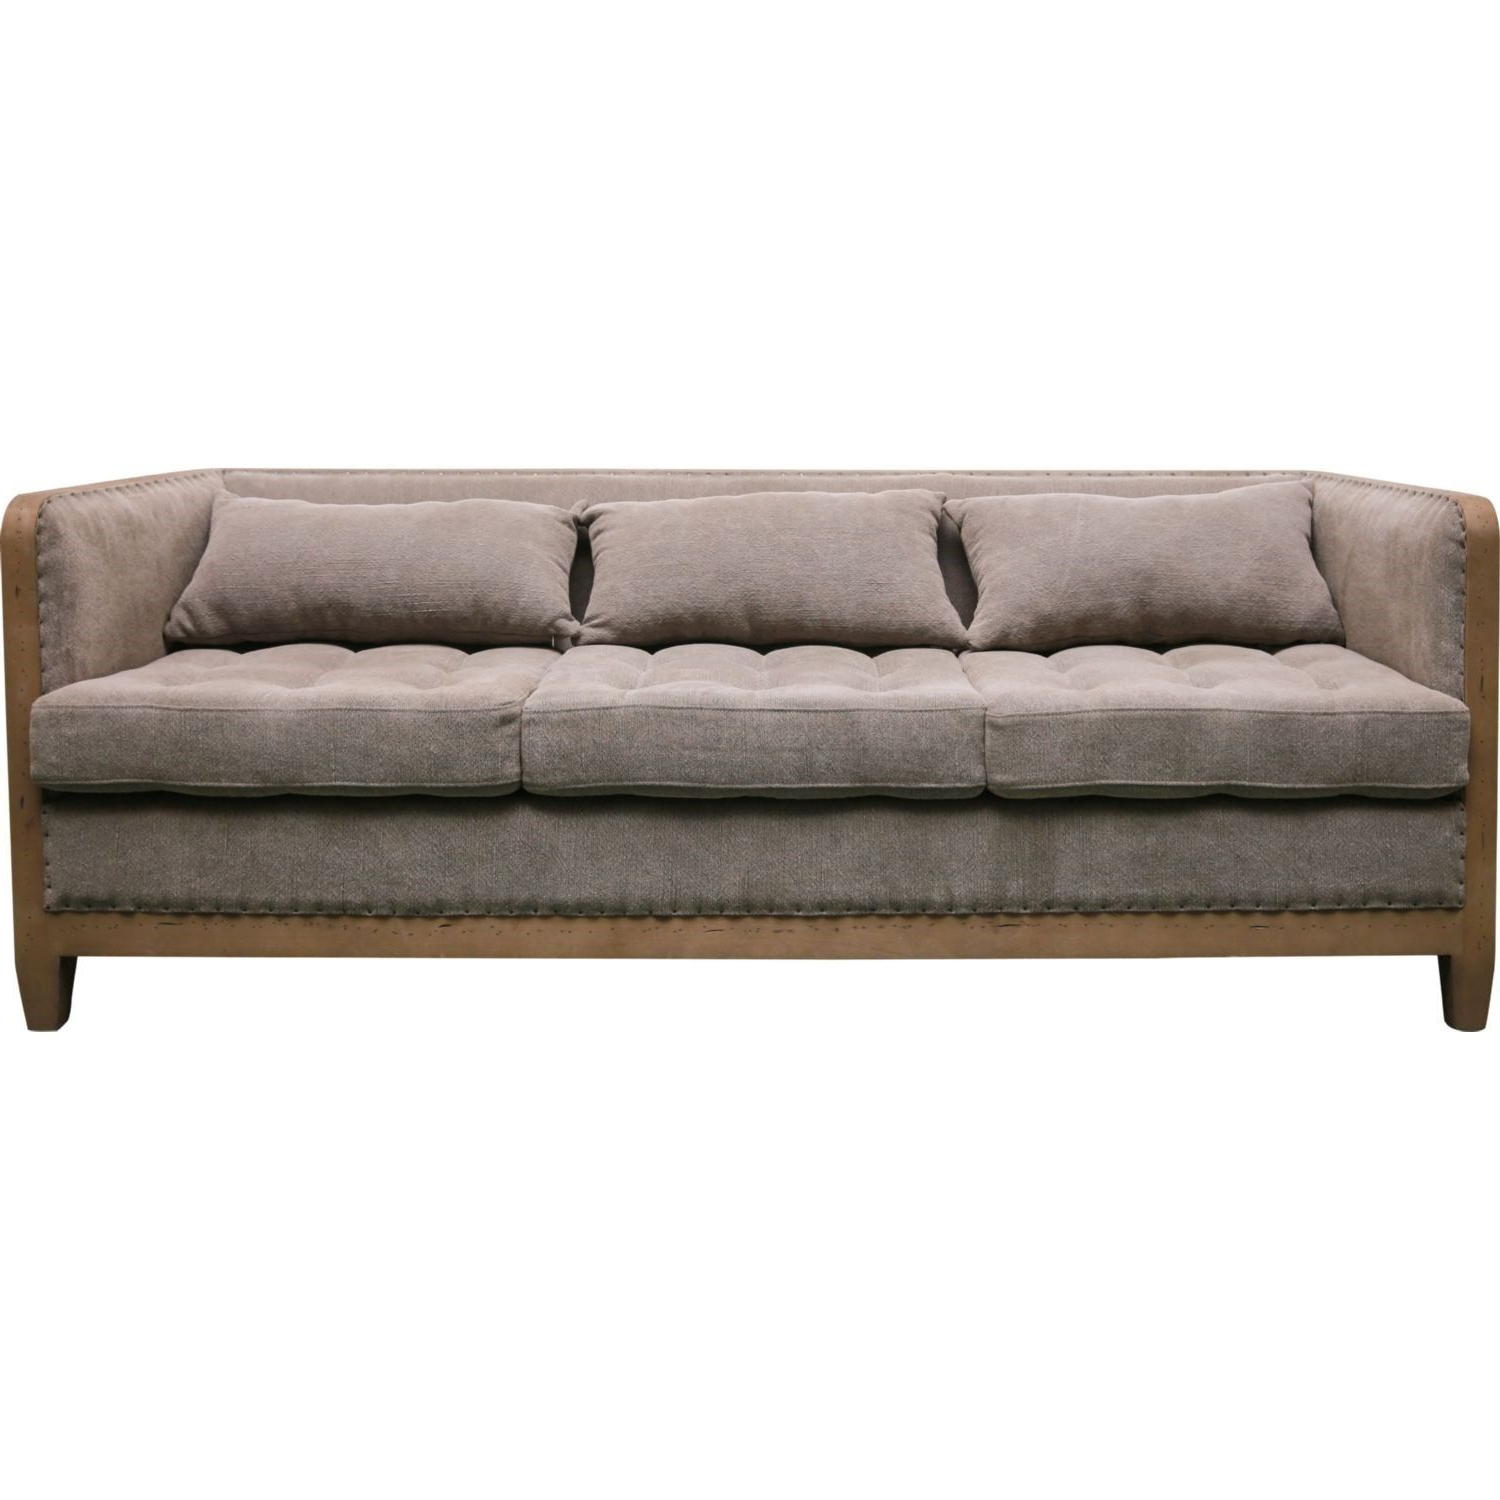 Pinterest With Regard To Cosette Leather Sofa Chairs (Gallery 5 of 20)